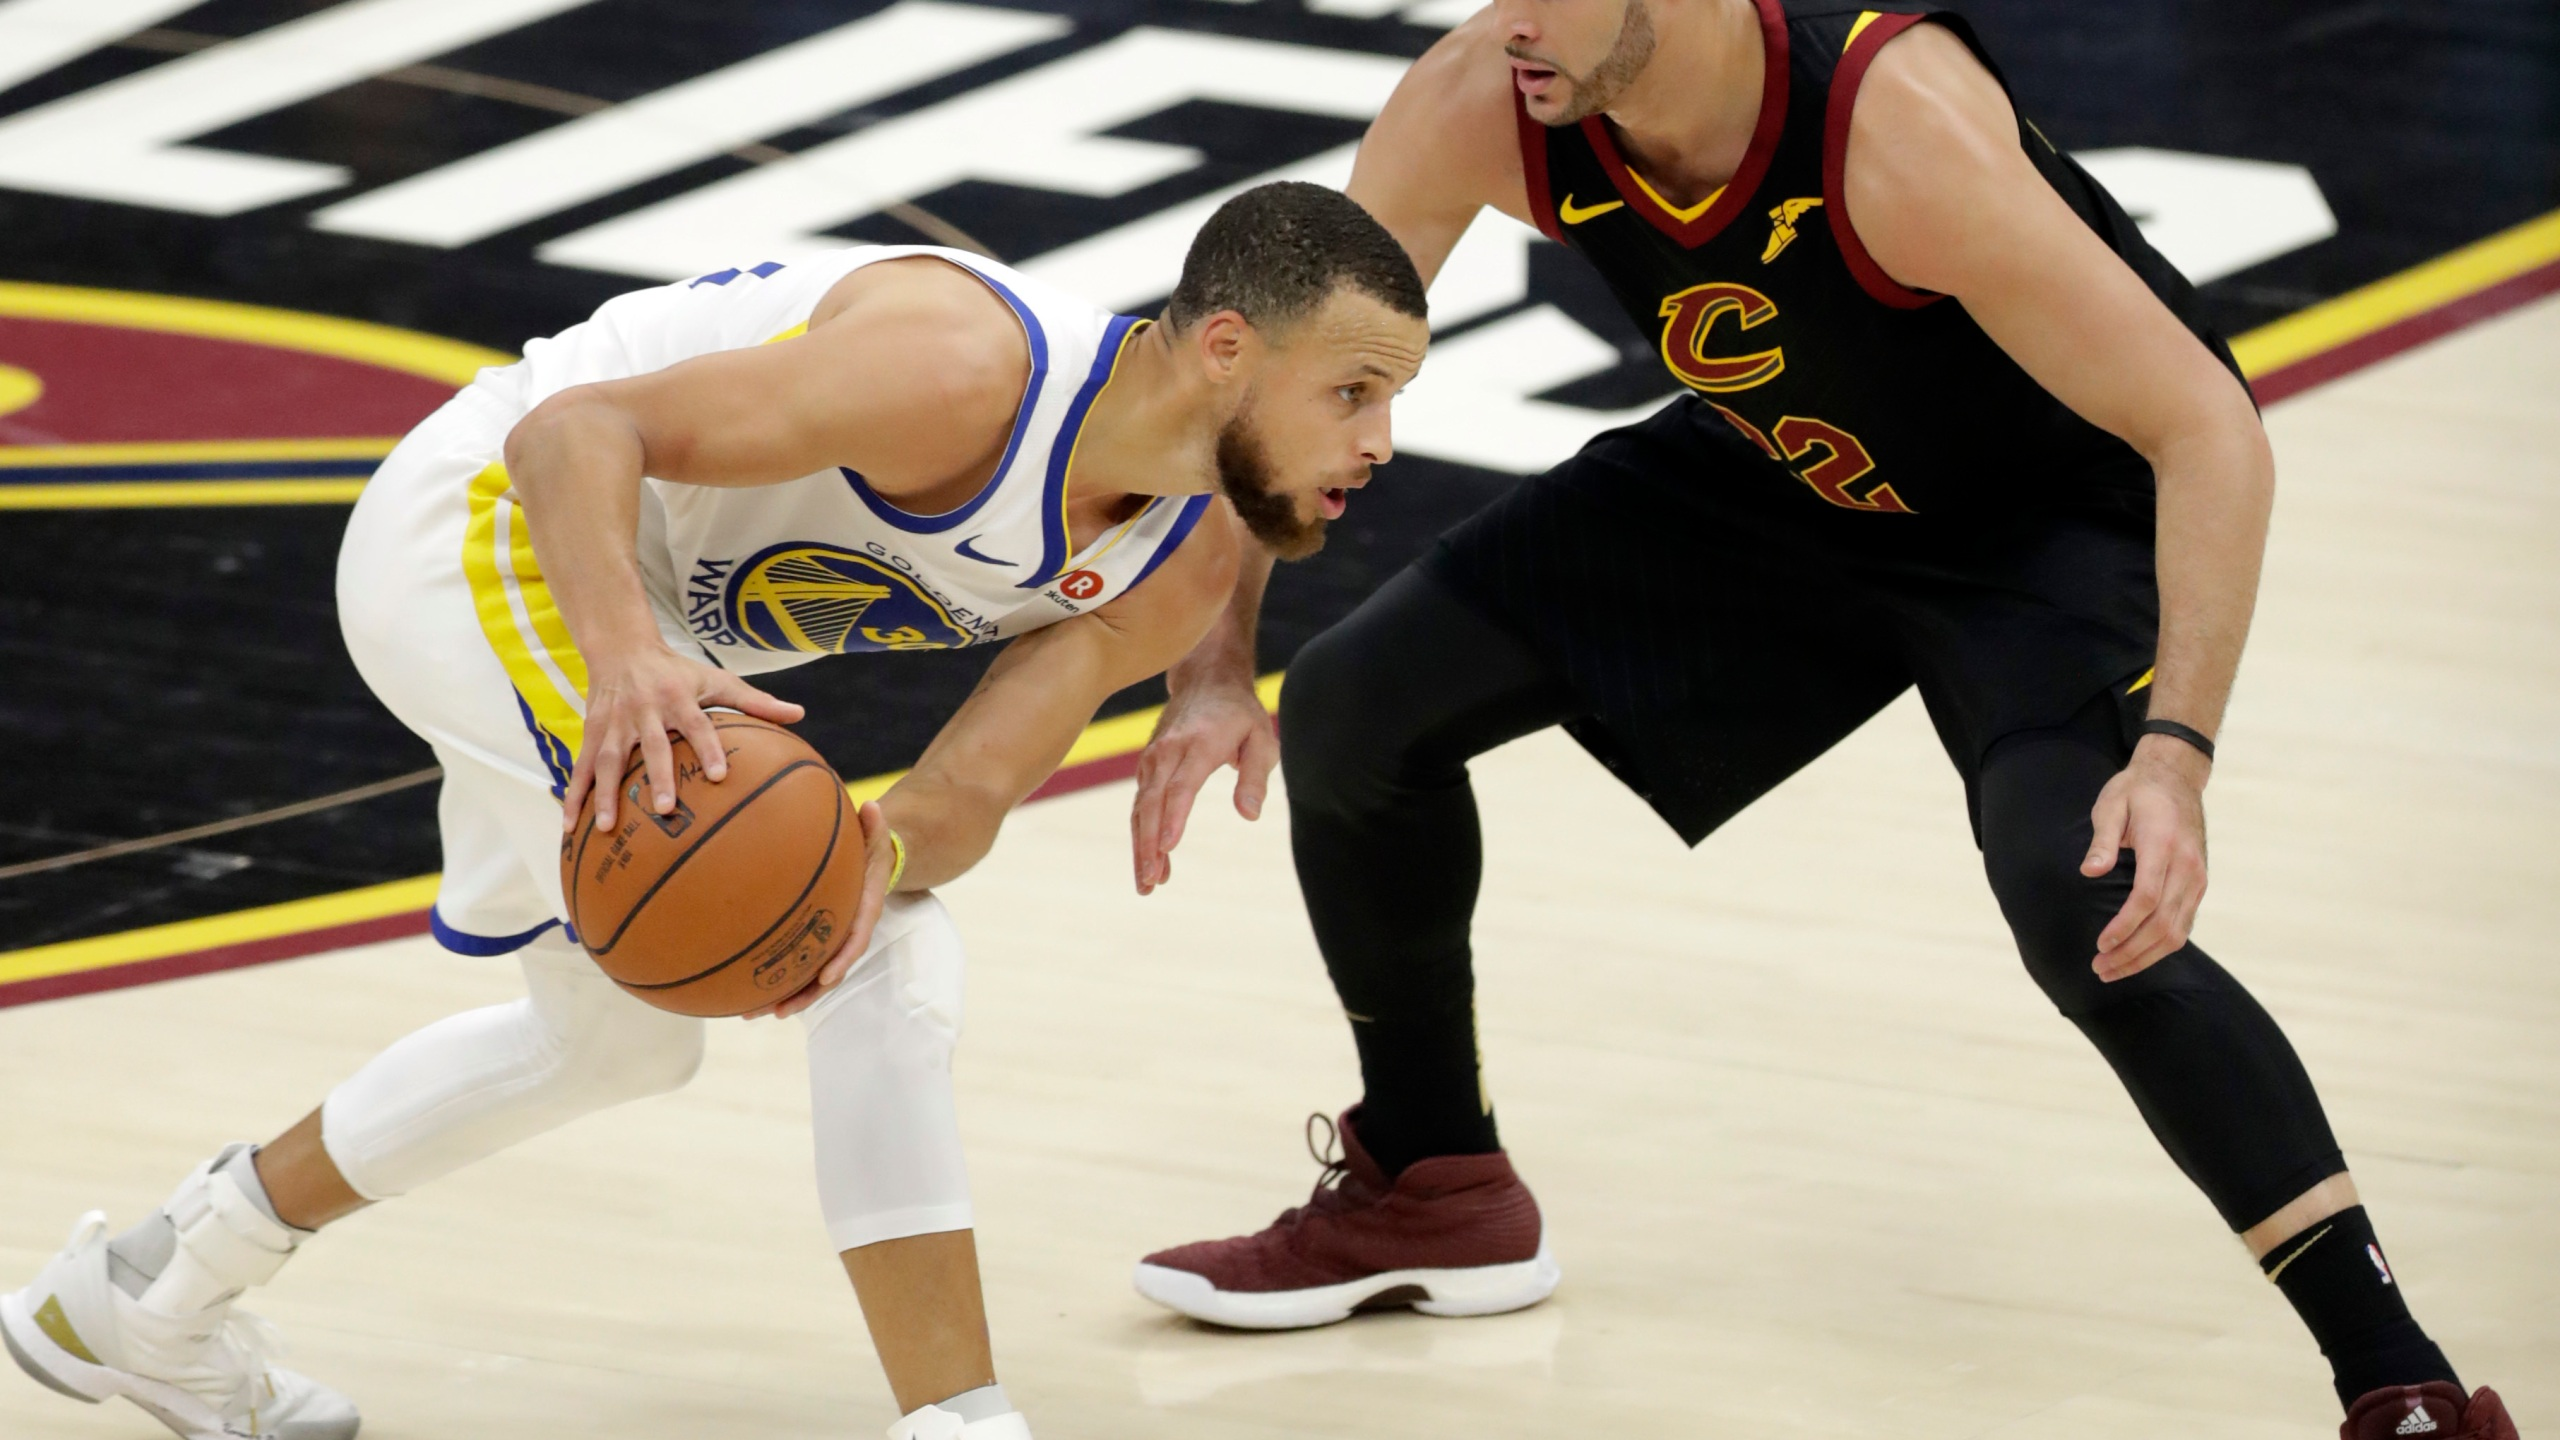 NBA_Finals_Warriors_Cavaliers_Basketball_48168-159532.jpg91635068